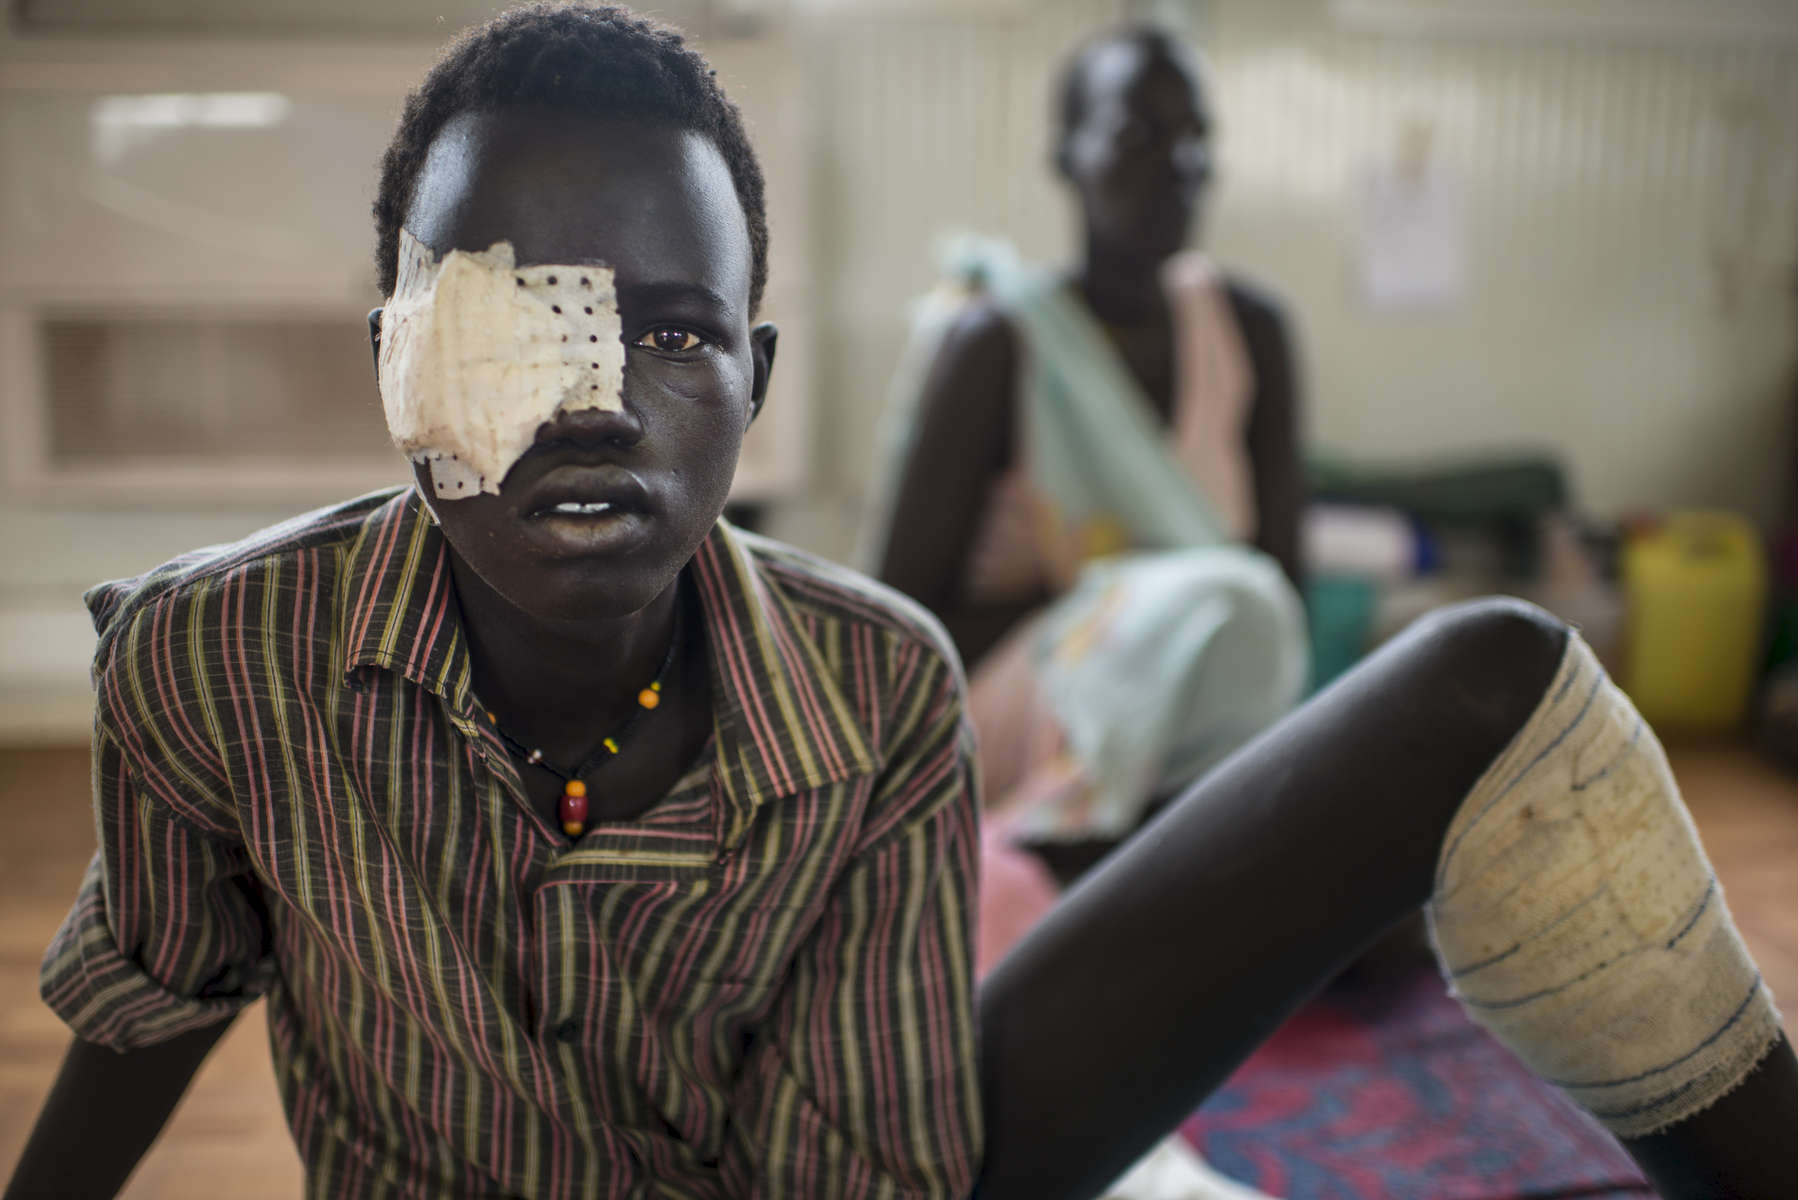 Lat Padang, who claims to be 18, a soldier with the opposition army, sits injured from battle while his mother sits in the background at a tent hospital at the base of the United Nations Mission in South Sudan in Bentiu, South Sudan, May 4, 2014.  Fighting between the government and the opposition has been going on since December 2013, and both sides are assumed to use child soldiers in combat despite international pressure and norms discouraging this.  Most combatants are careful not to admit to being under 18 because of potential backlash, so it is difficult to confirm based on appearances who is and who is not a child soldier.  Over twenty thousand internally displaced civilians live at the UNMISS base in Bentiu, and one million Southern Sudanese have been displaced from their homes as the civil war rages in the country, pitting ethnic Nu'er against Dinka.  (Credit: Lynsey Addario)